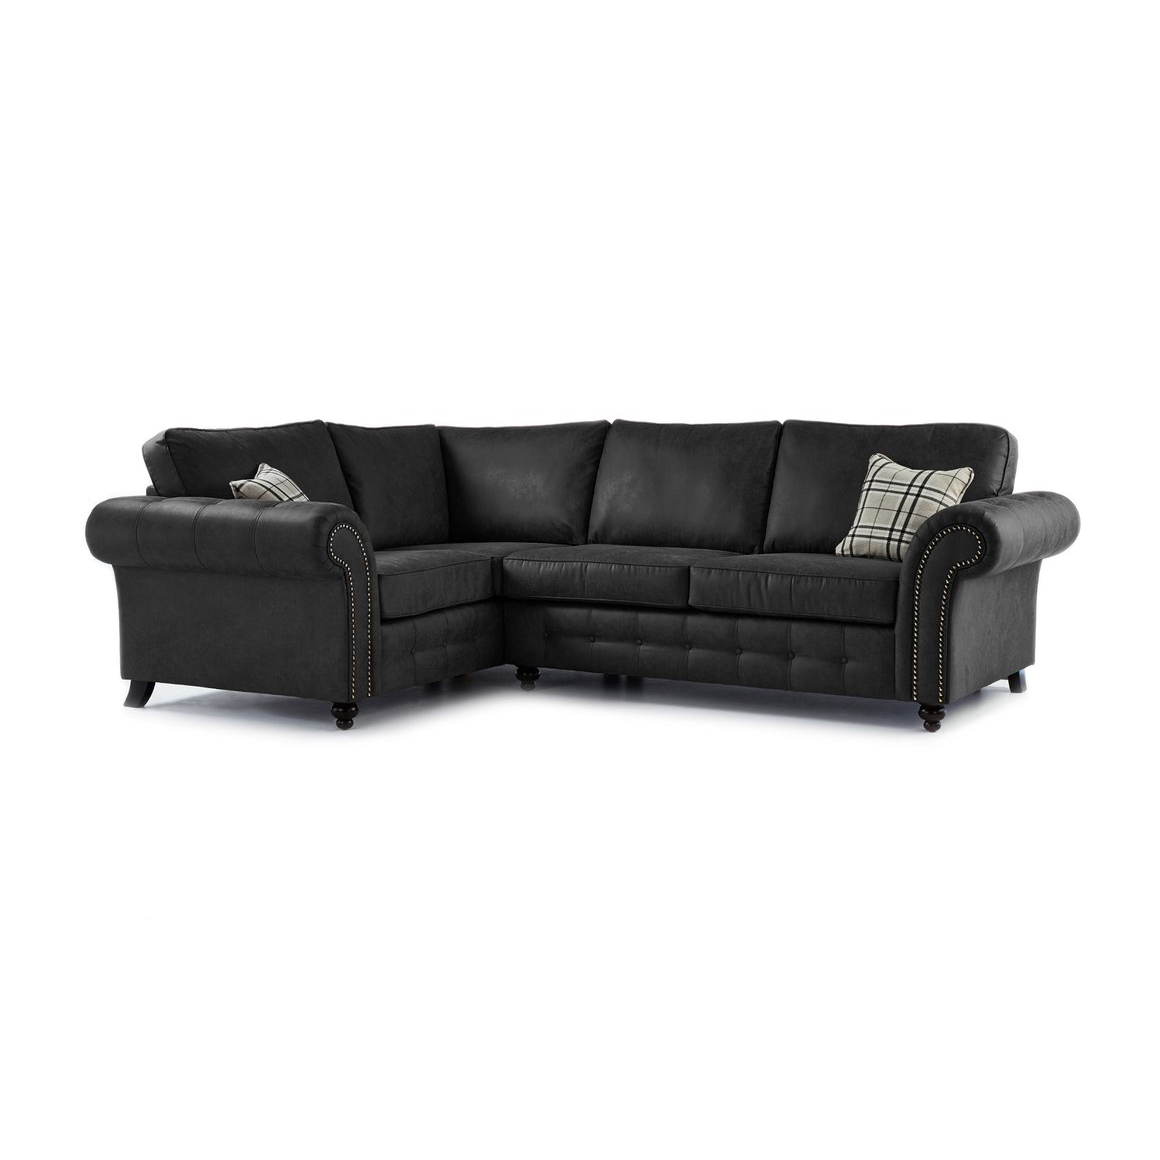 - Oakland Faux Leather Left Hand Corner Sofa In Black Just Sit On It